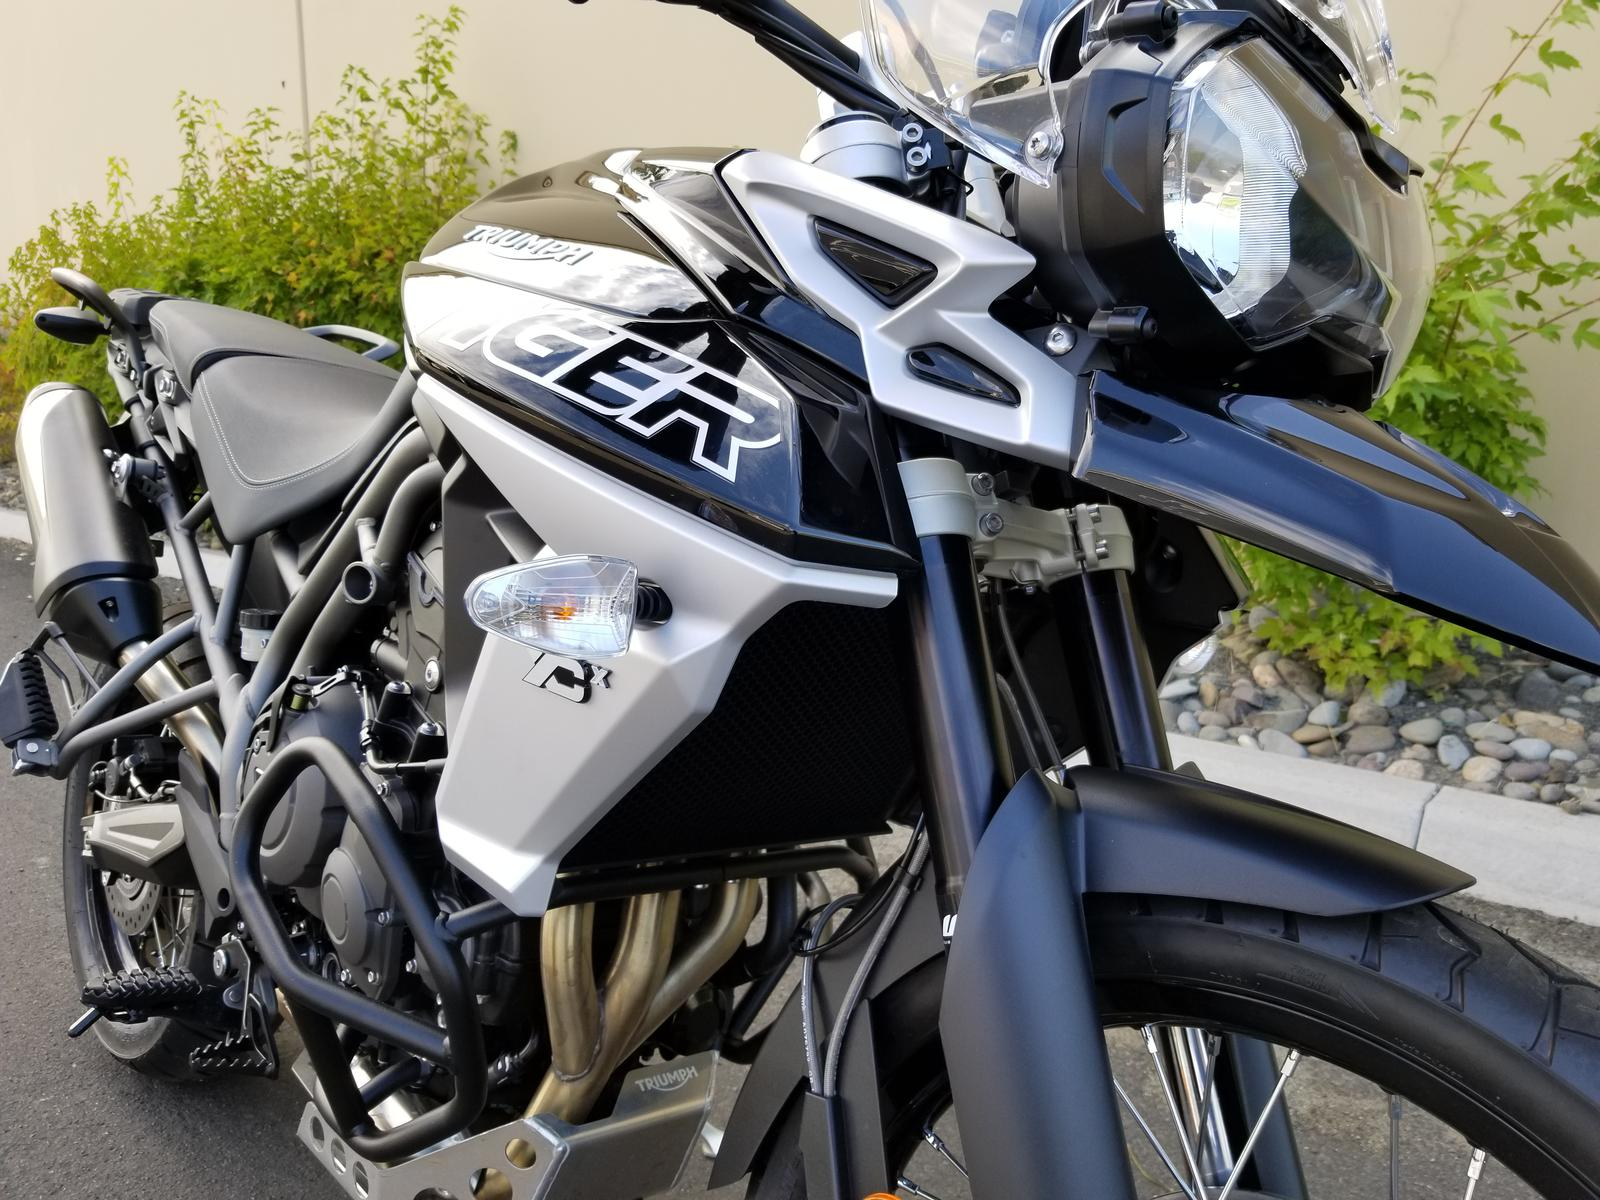 2018 Triumph Tiger 800 Xcx For Sale In Reno Nv Euro Cycle Reno